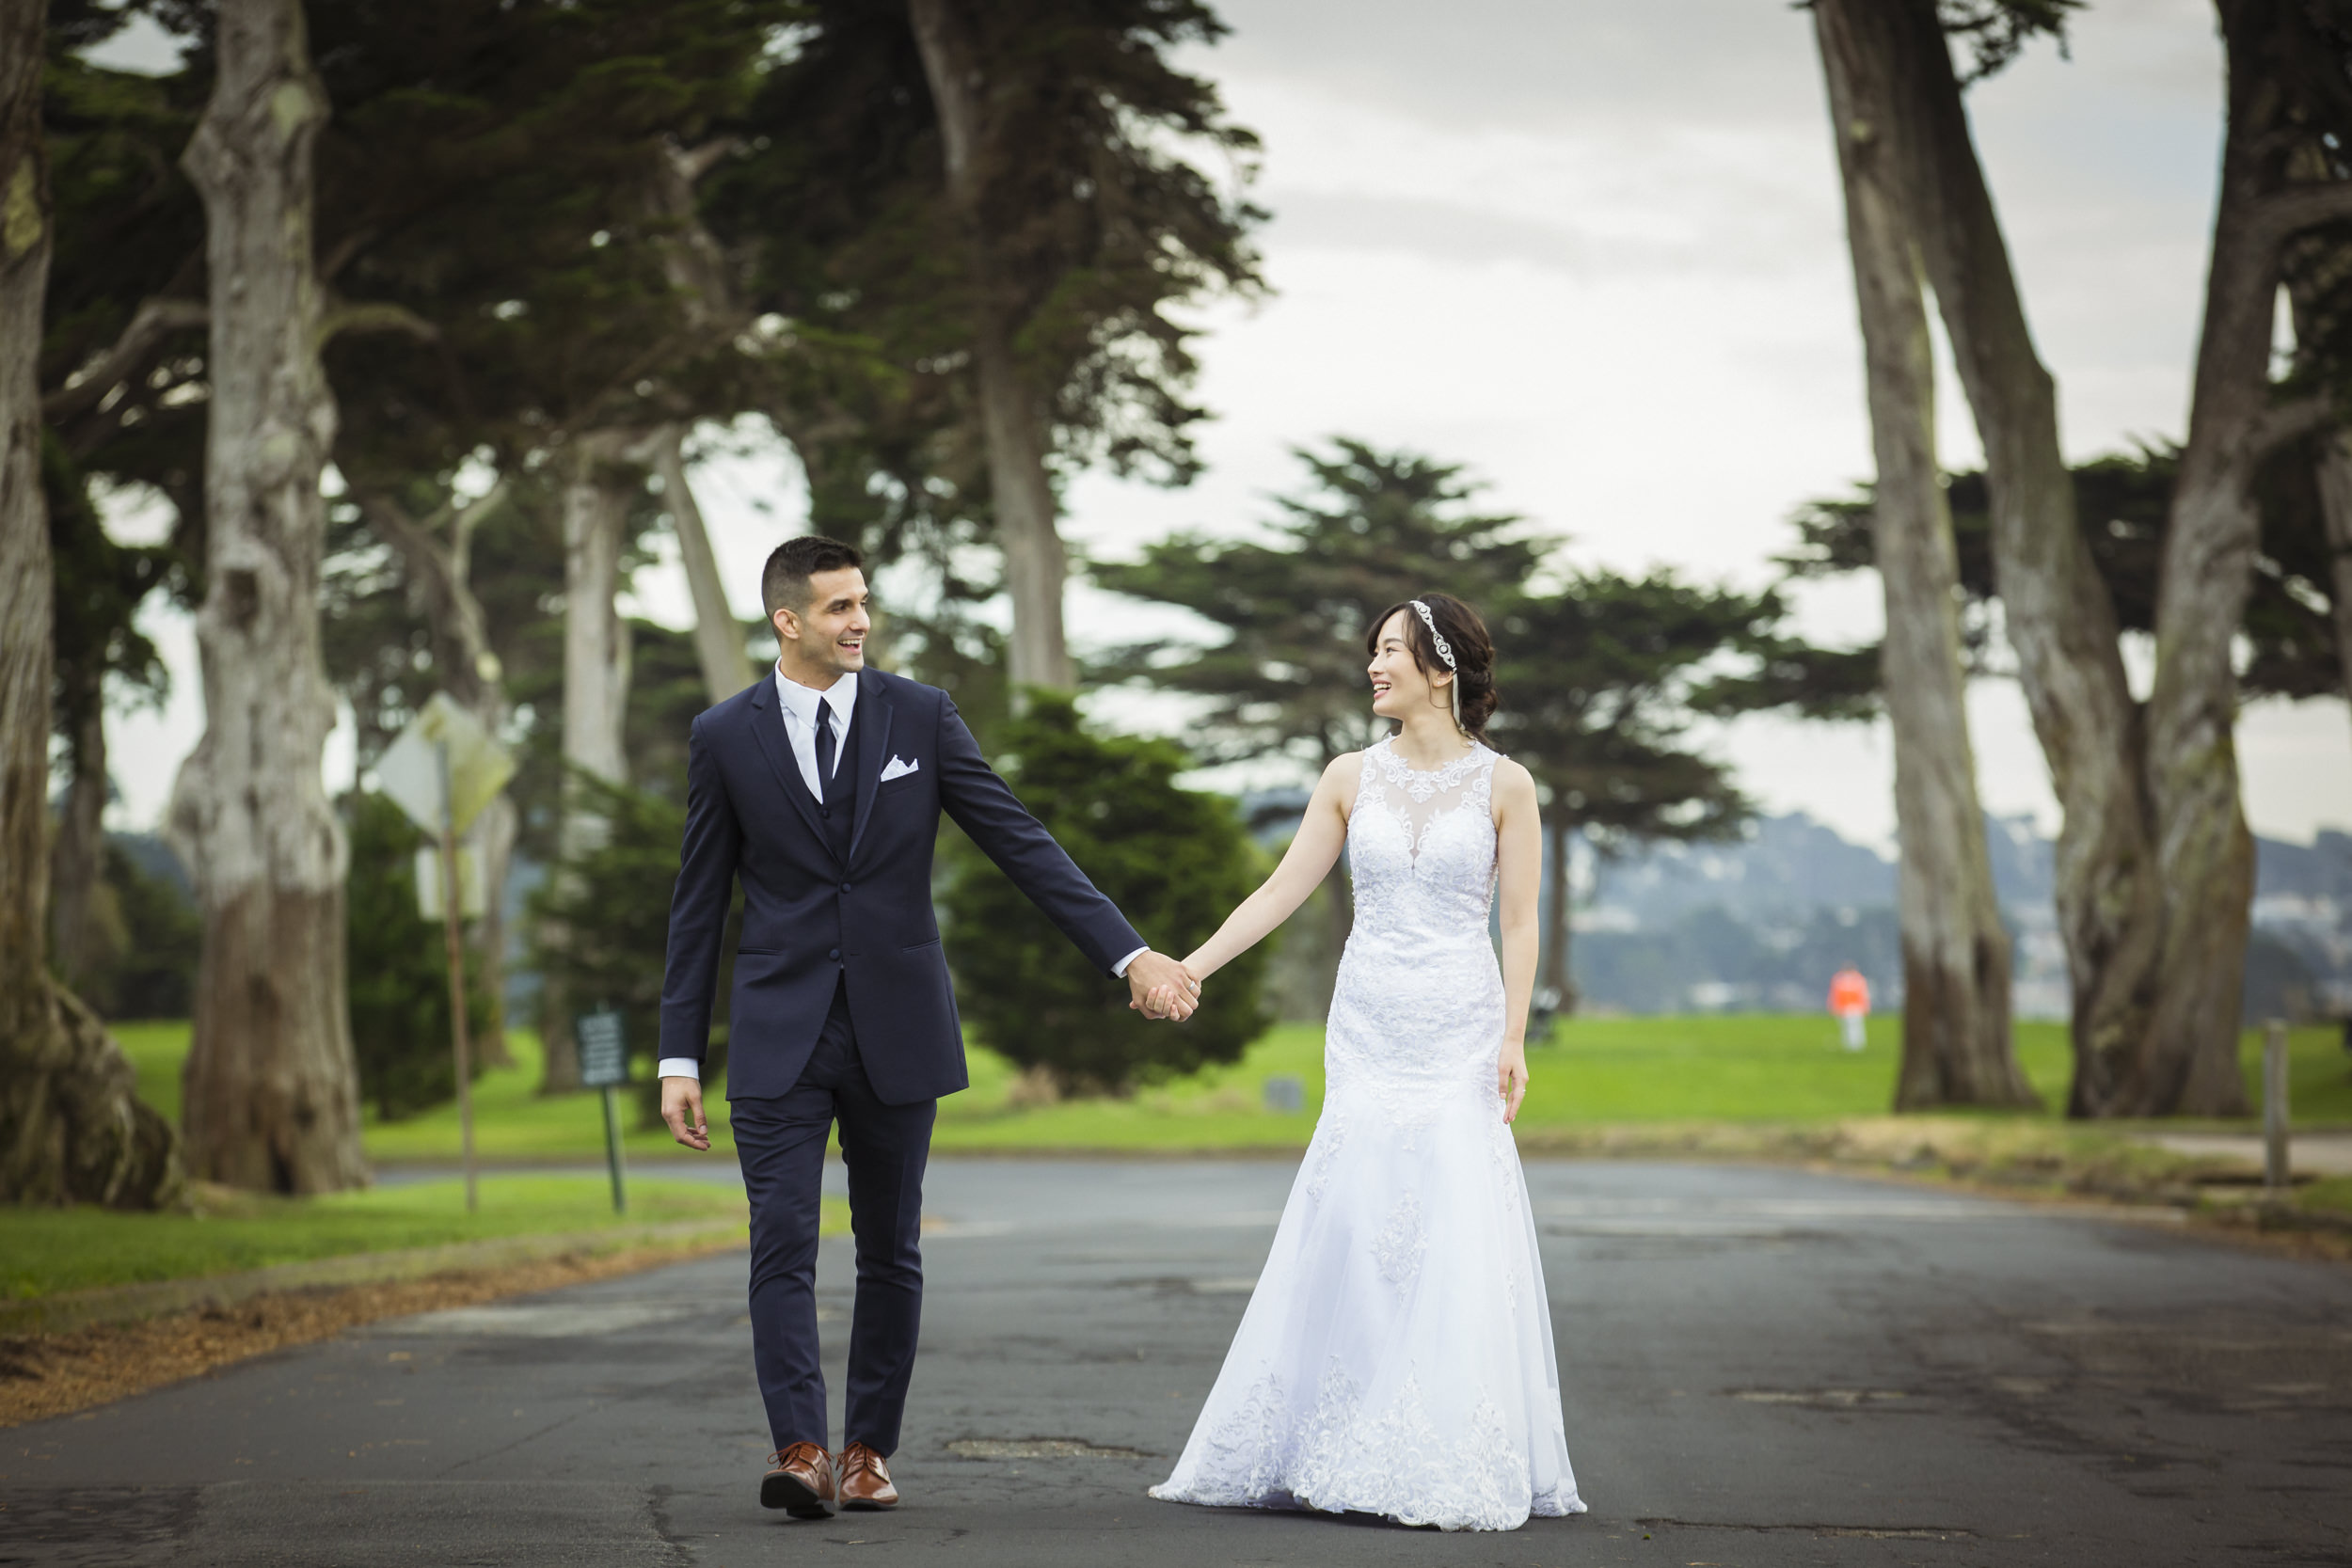 damon-youngseon-wedding-couple-session-lake-merced-san-francisco-1.jpg